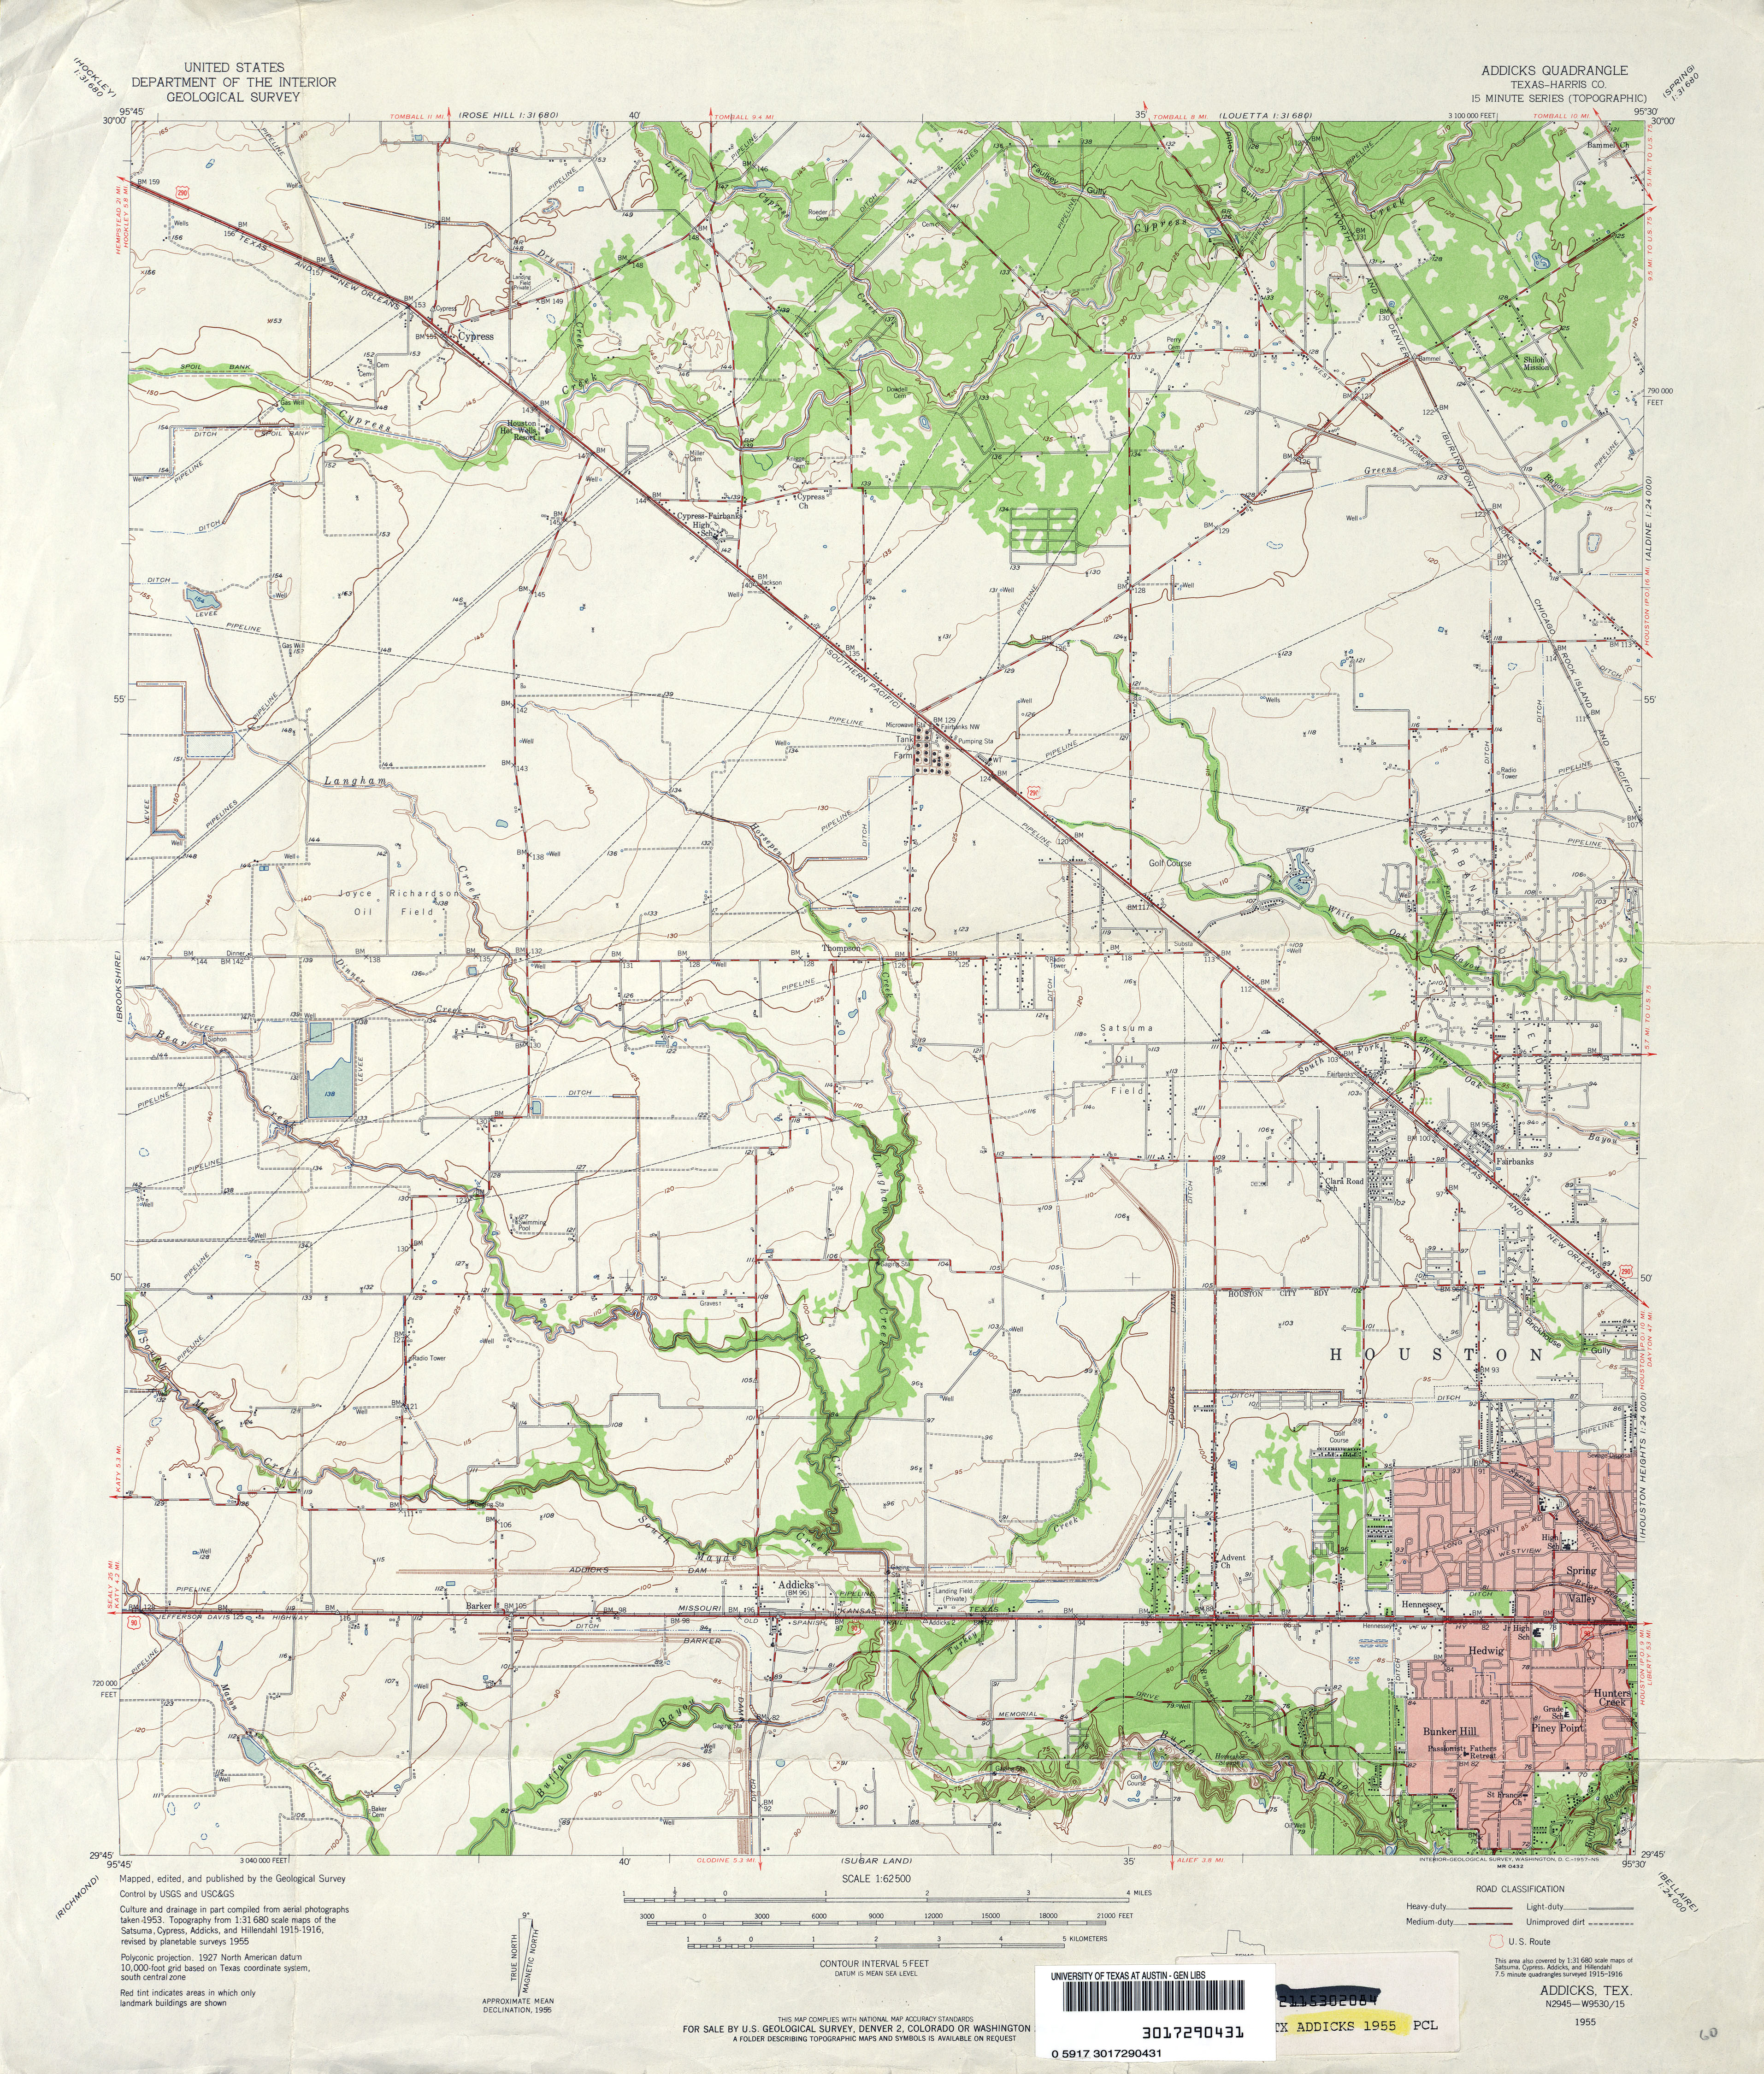 Texas Topographic Maps PerryCastañeda Map Collection UT - Texas road map with counties